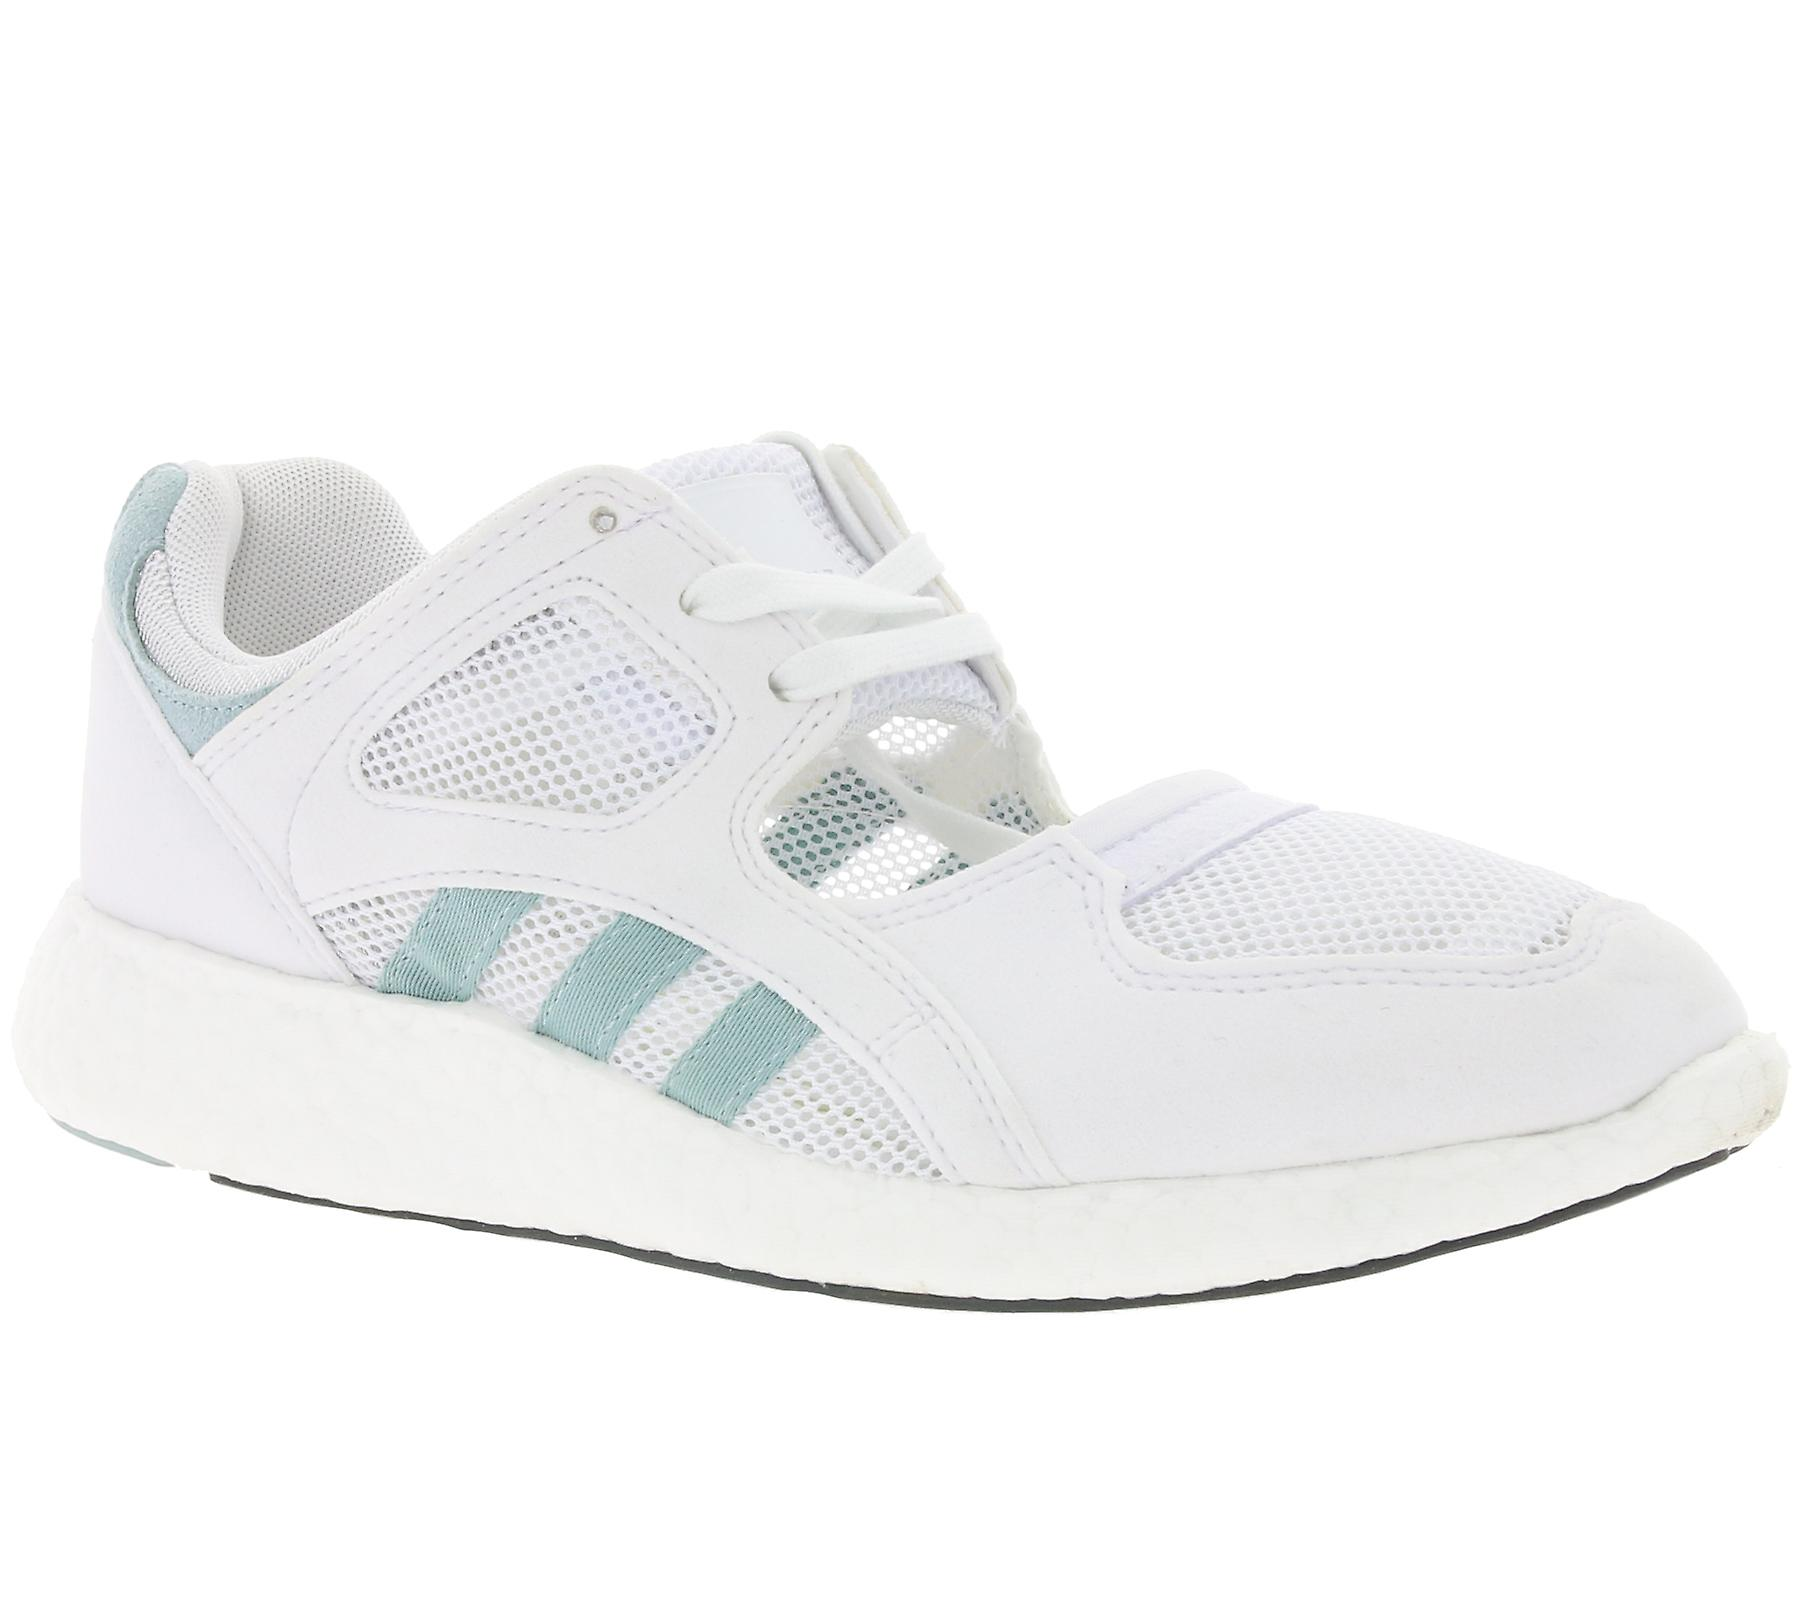 buy online abfd1 68708 adidas originals equipment racing 9116 W boost womens running shoes white  BA7570